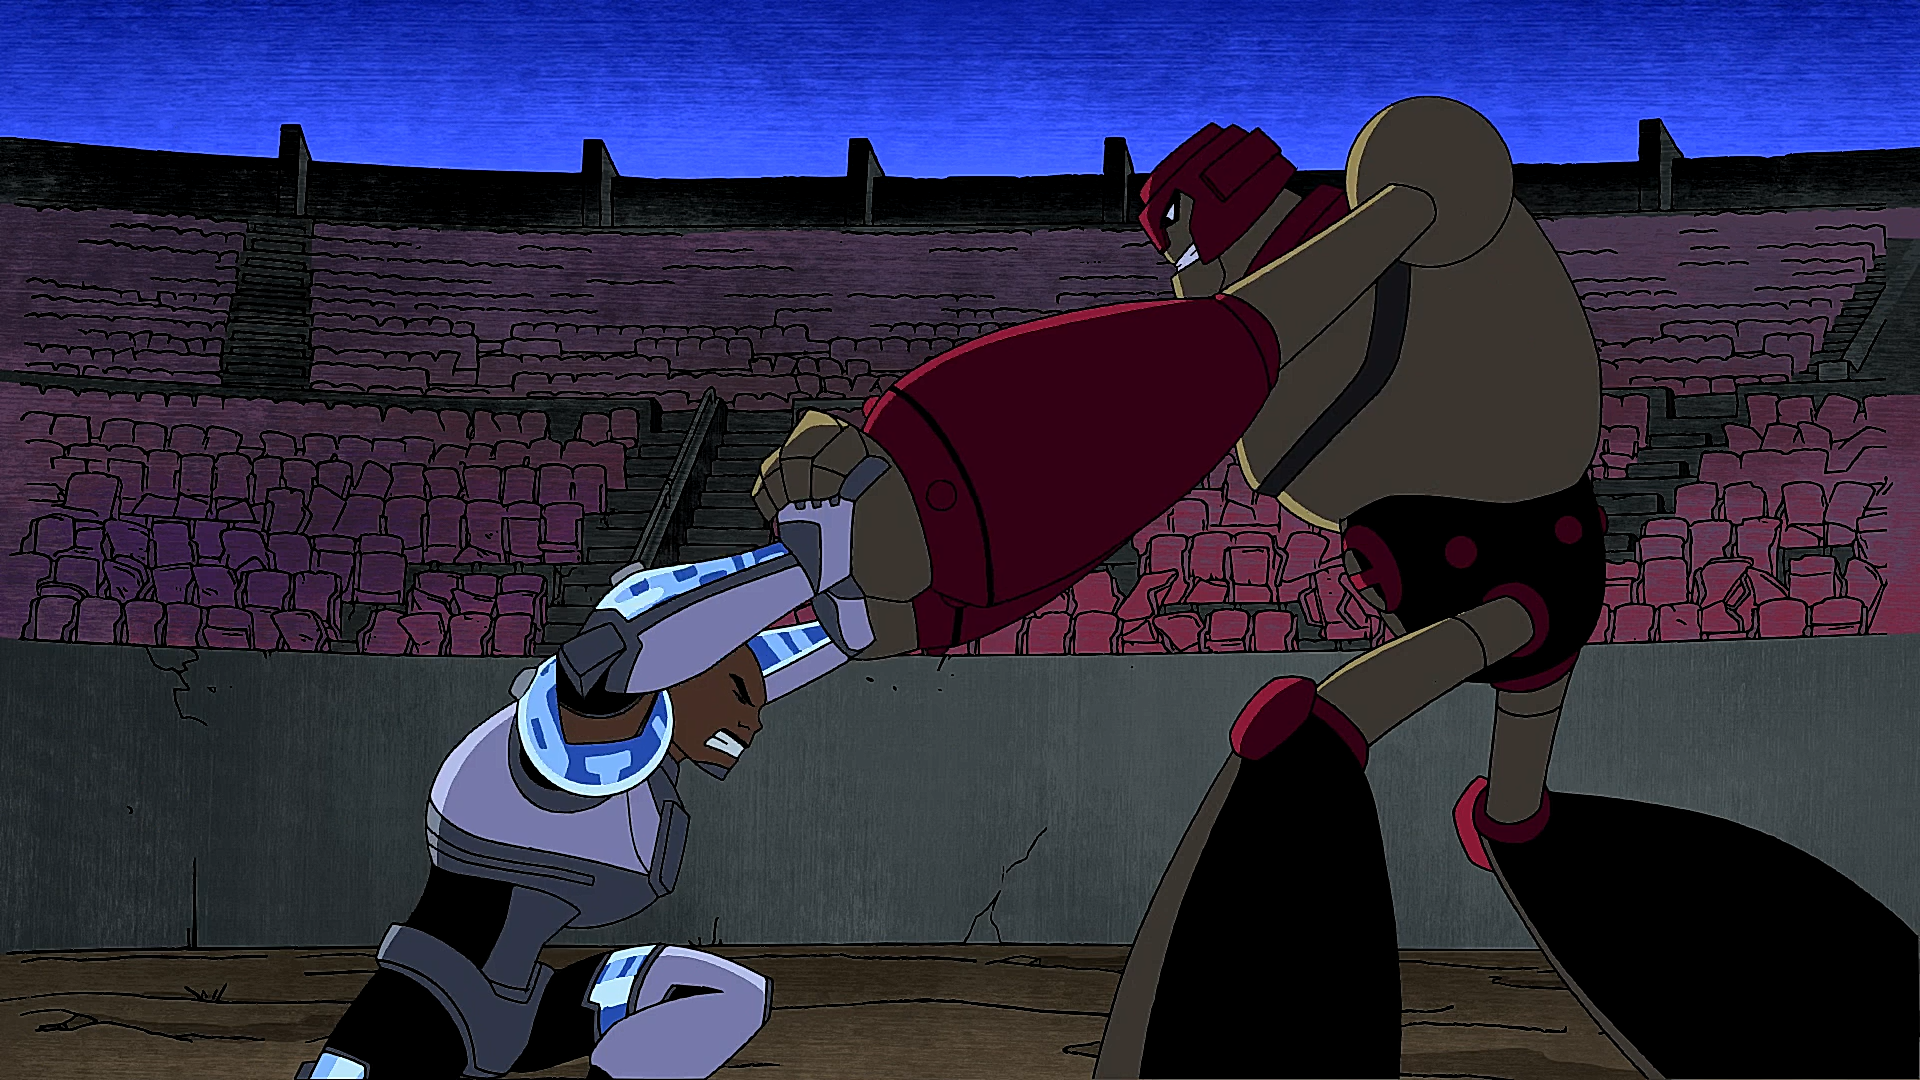 Teen Titans (TV Series) Episode: Only Human